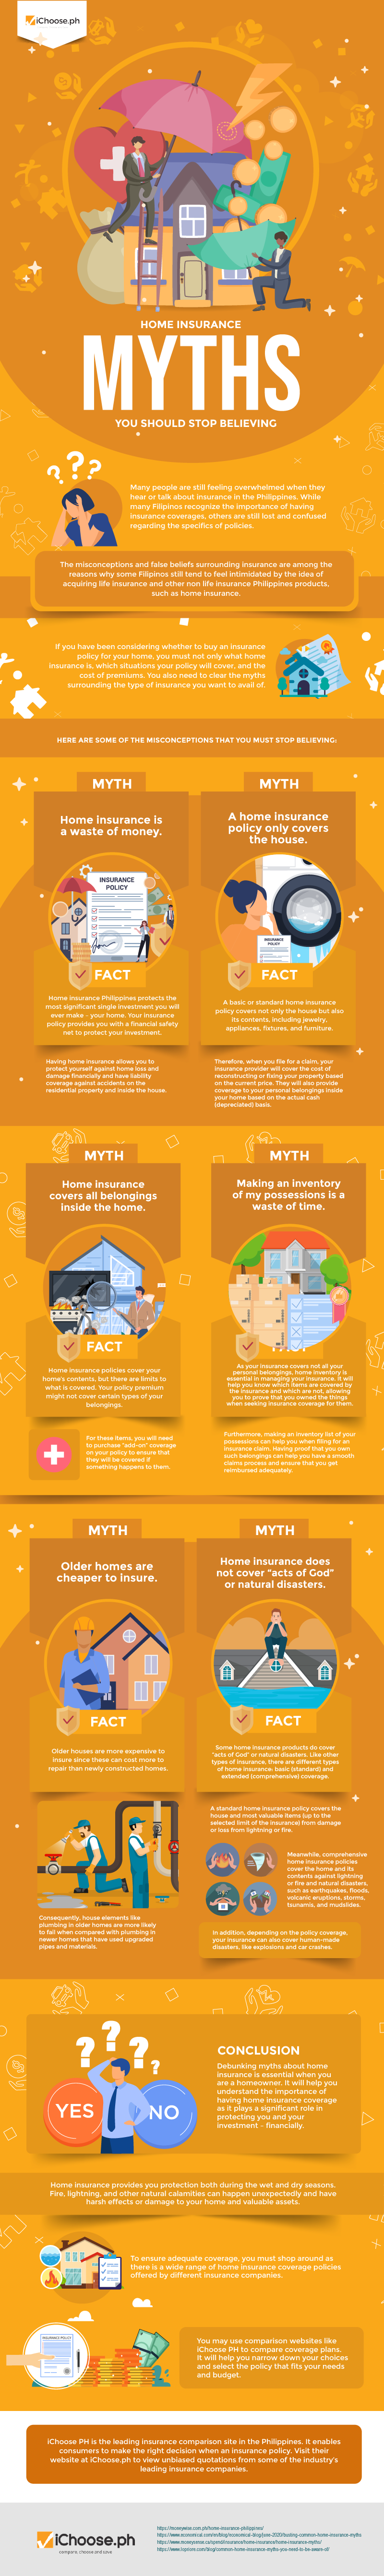 Home-Insurance-Myths-You-Should-Stop-Believing-Infographic